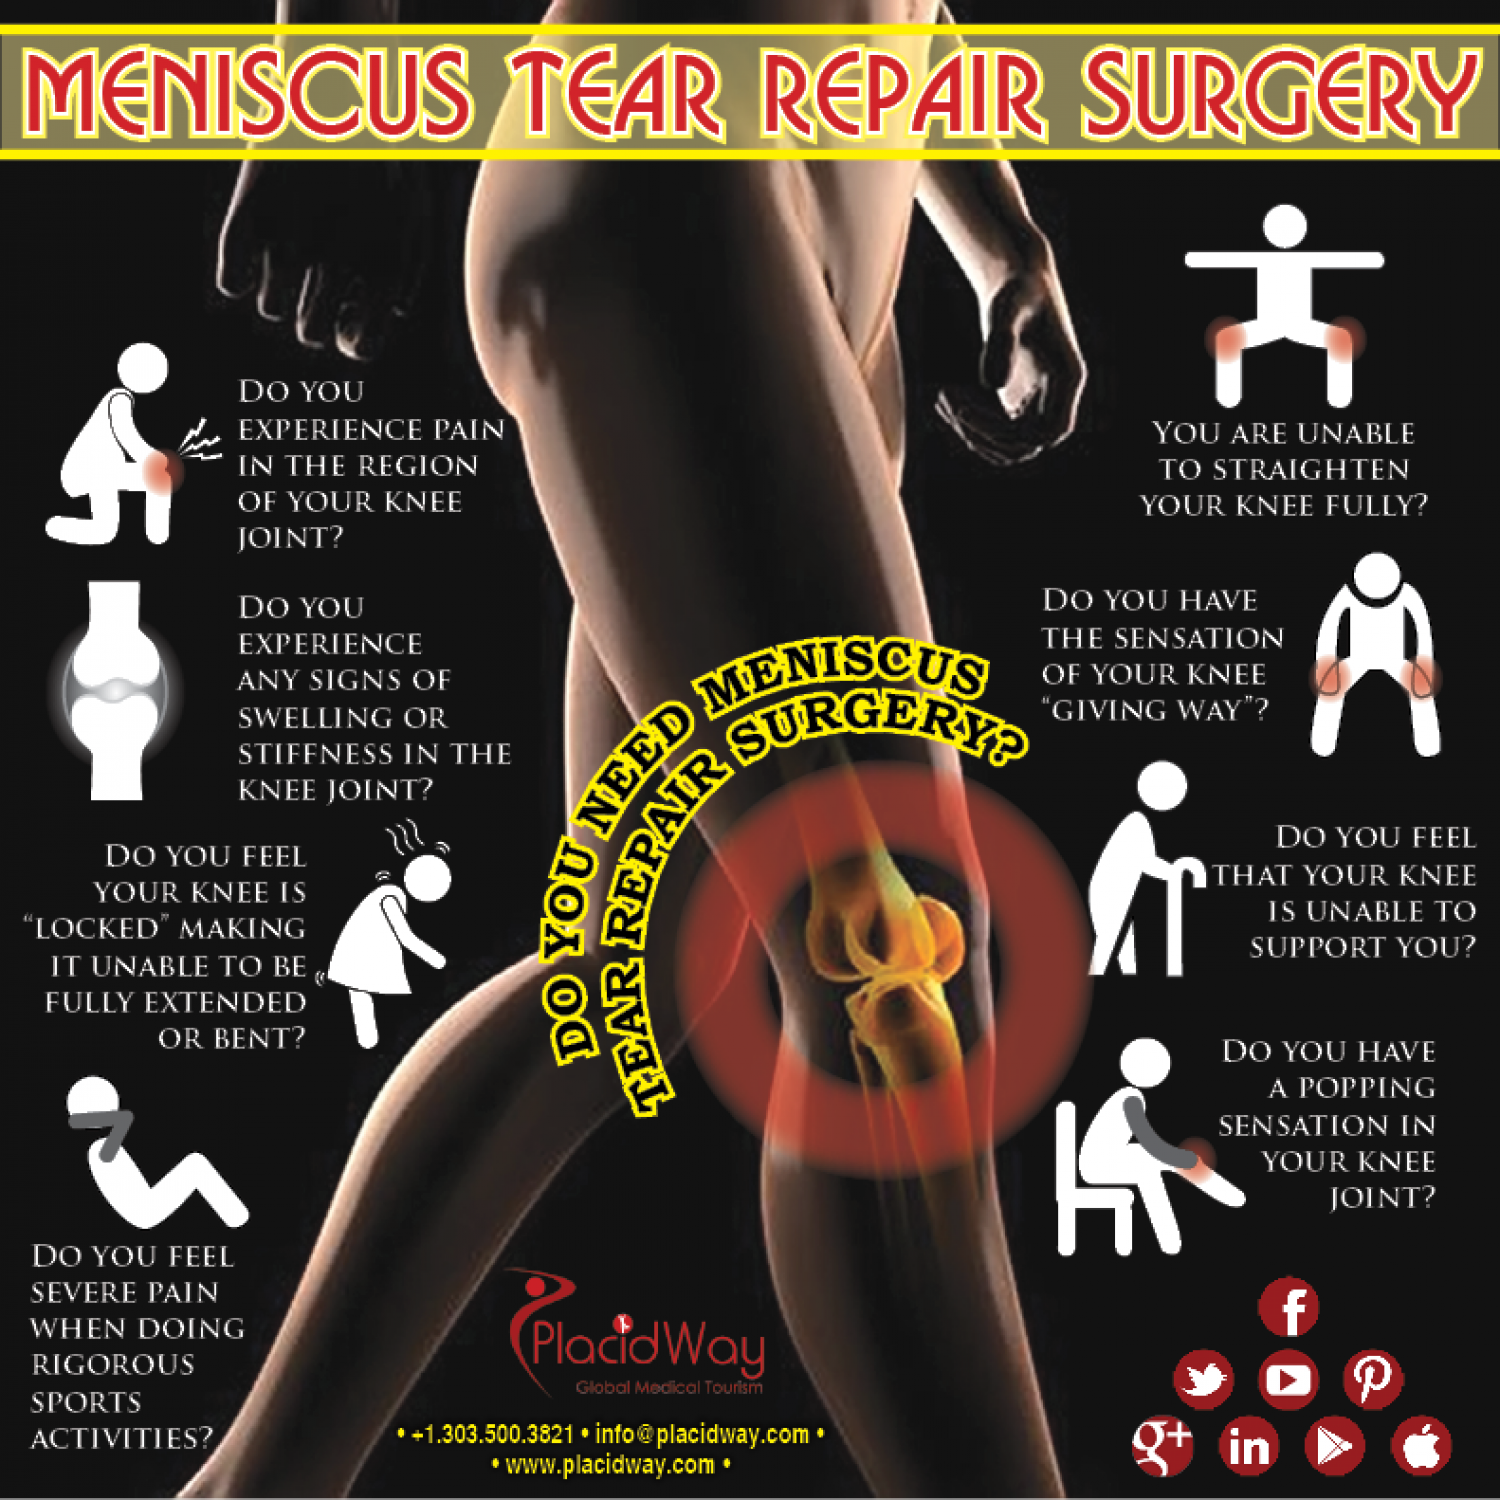 Repair Surgery For Meniscus Tear  Infographic